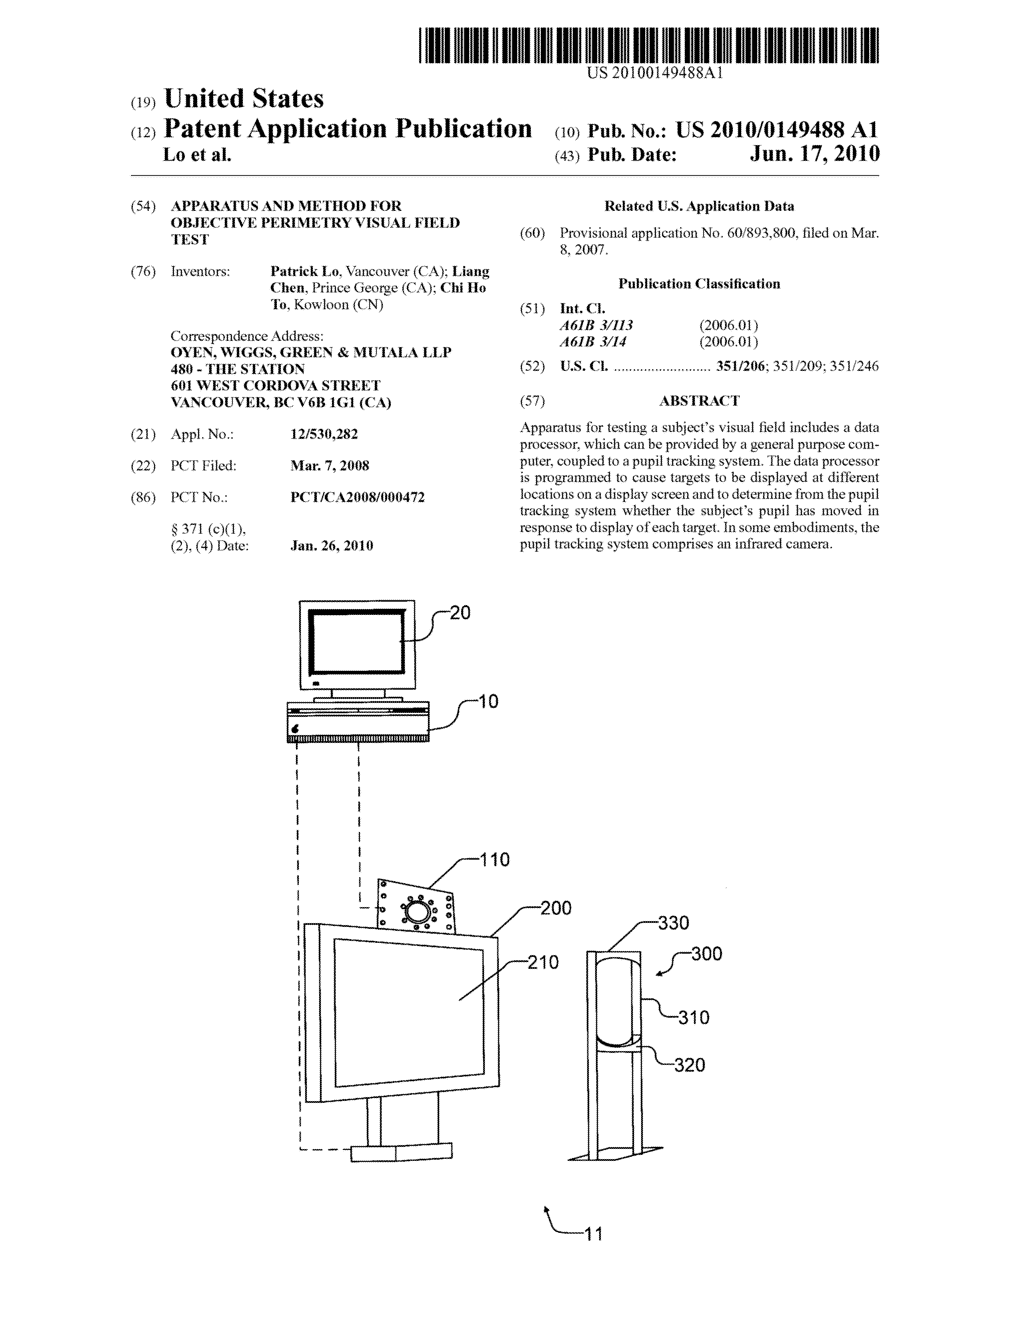 Apparatus And Method For Objective Perimetry Visual Field Test Rocket Engine Schematics Diagram Schematic Image 01